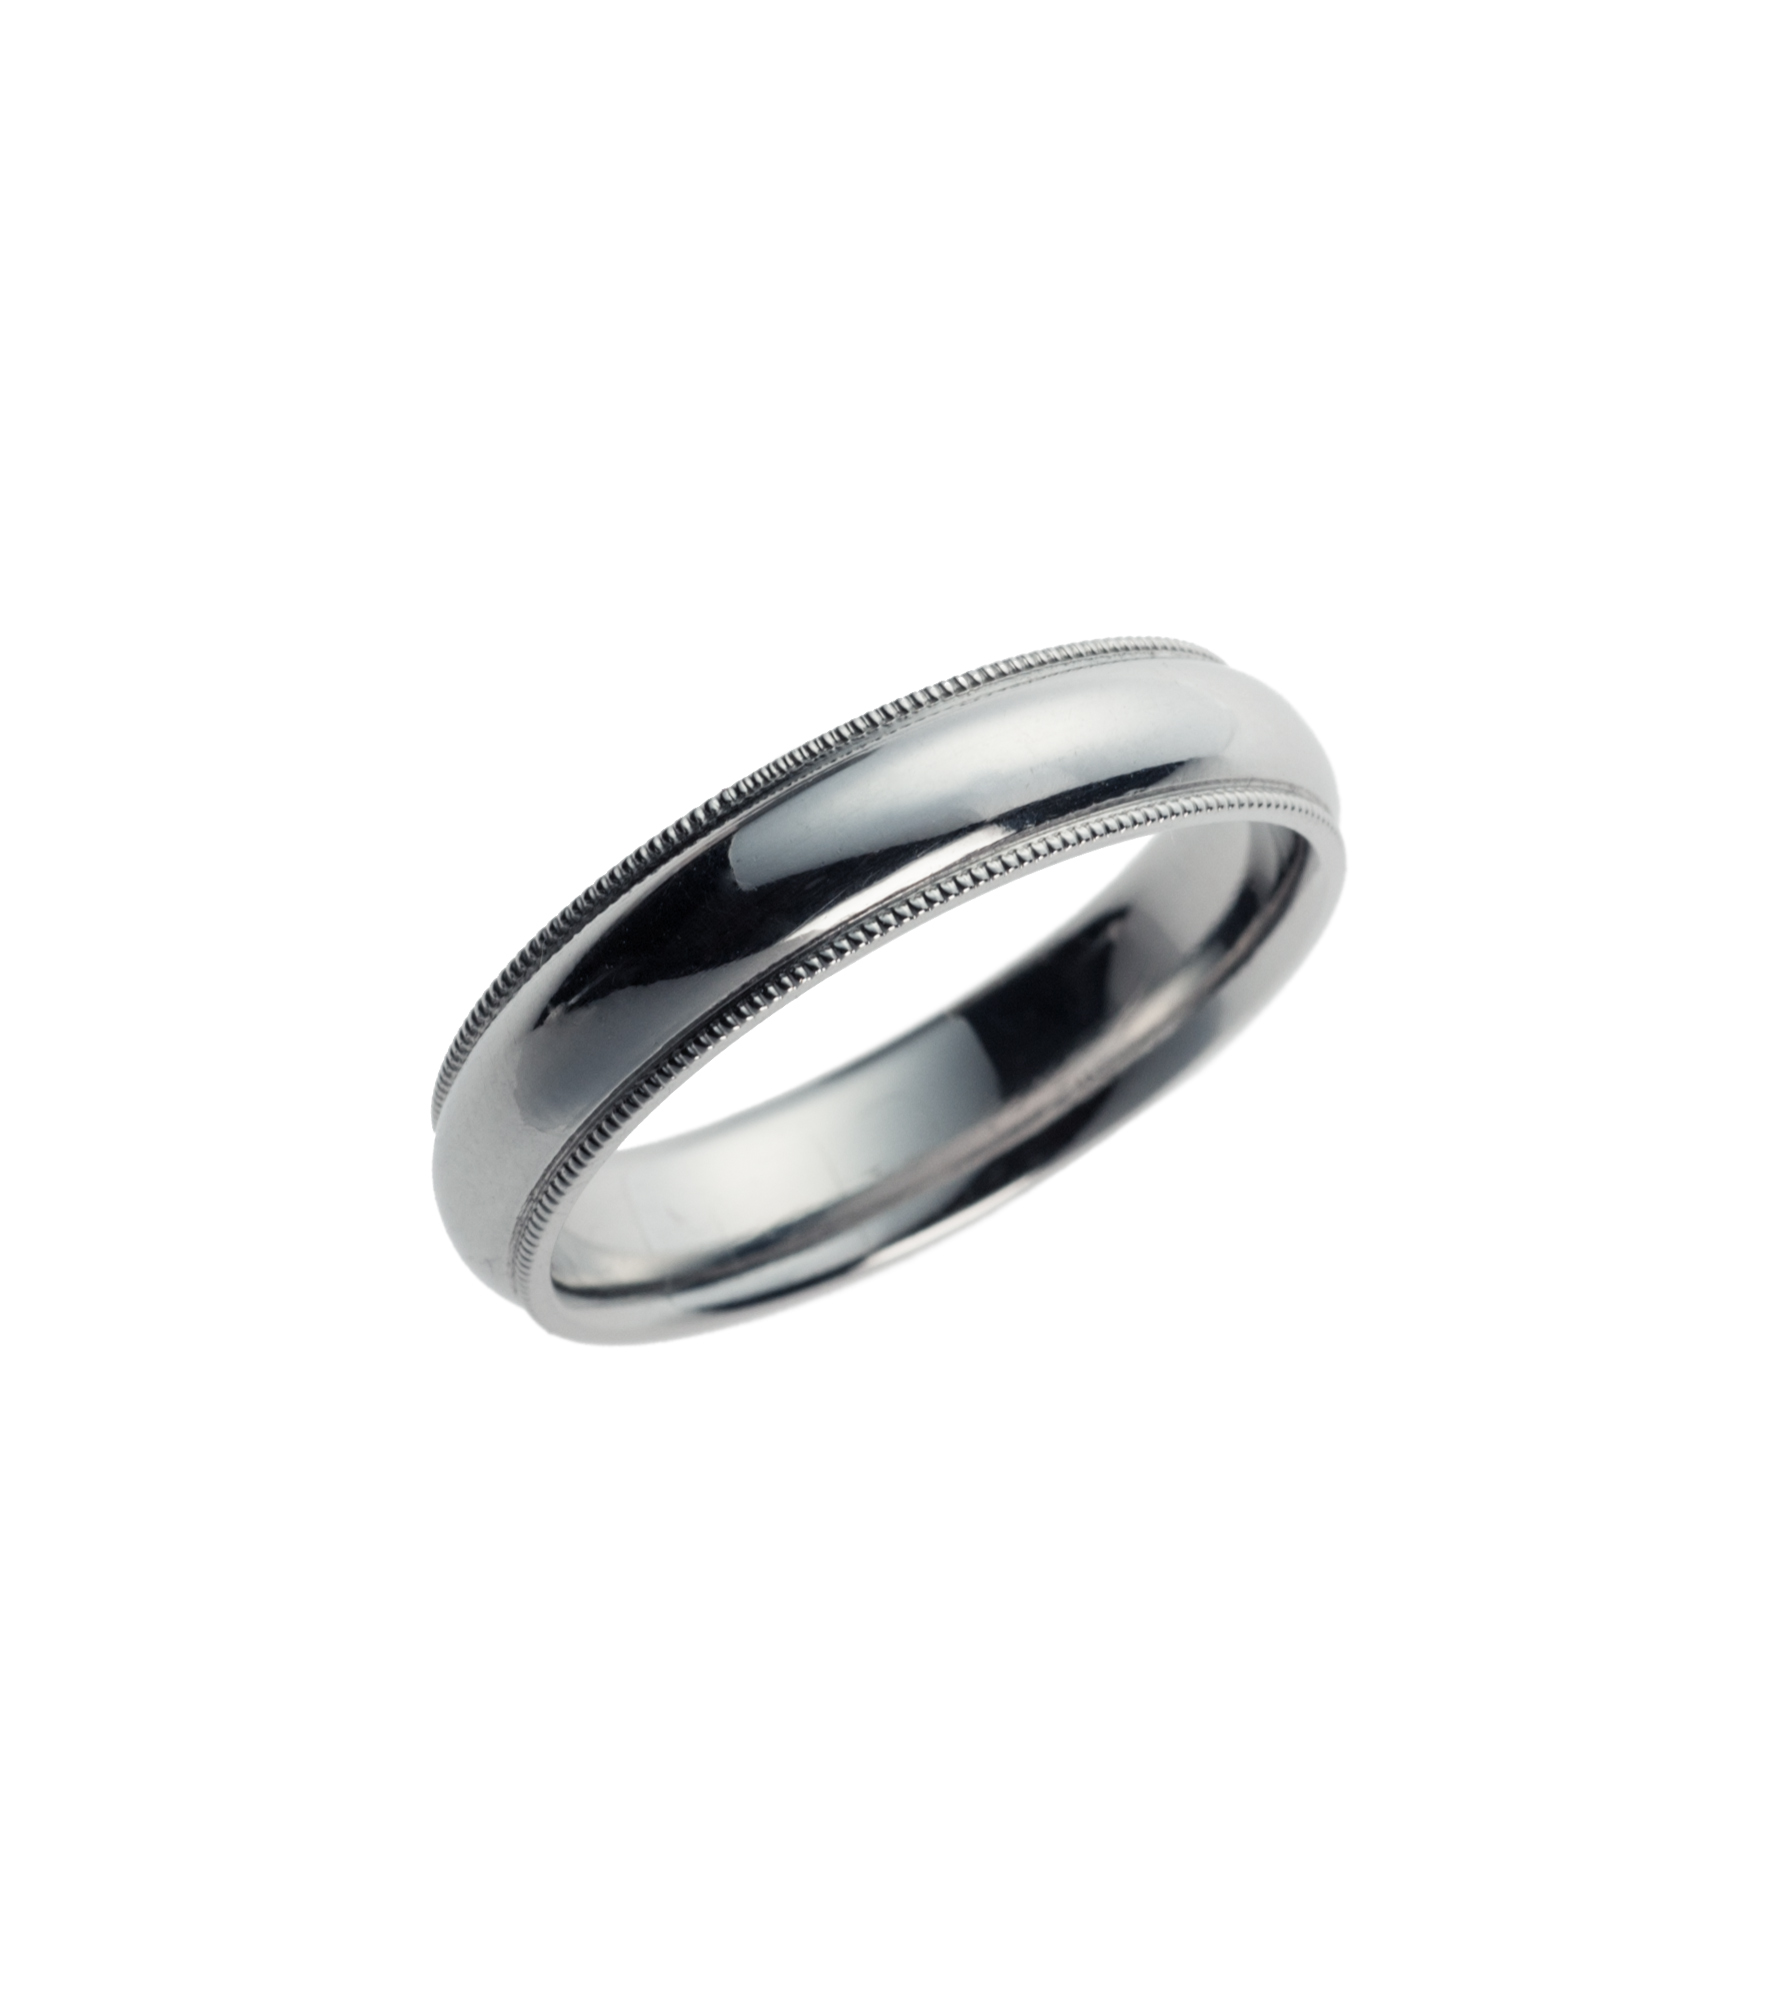 Platinum millgrain wedding band